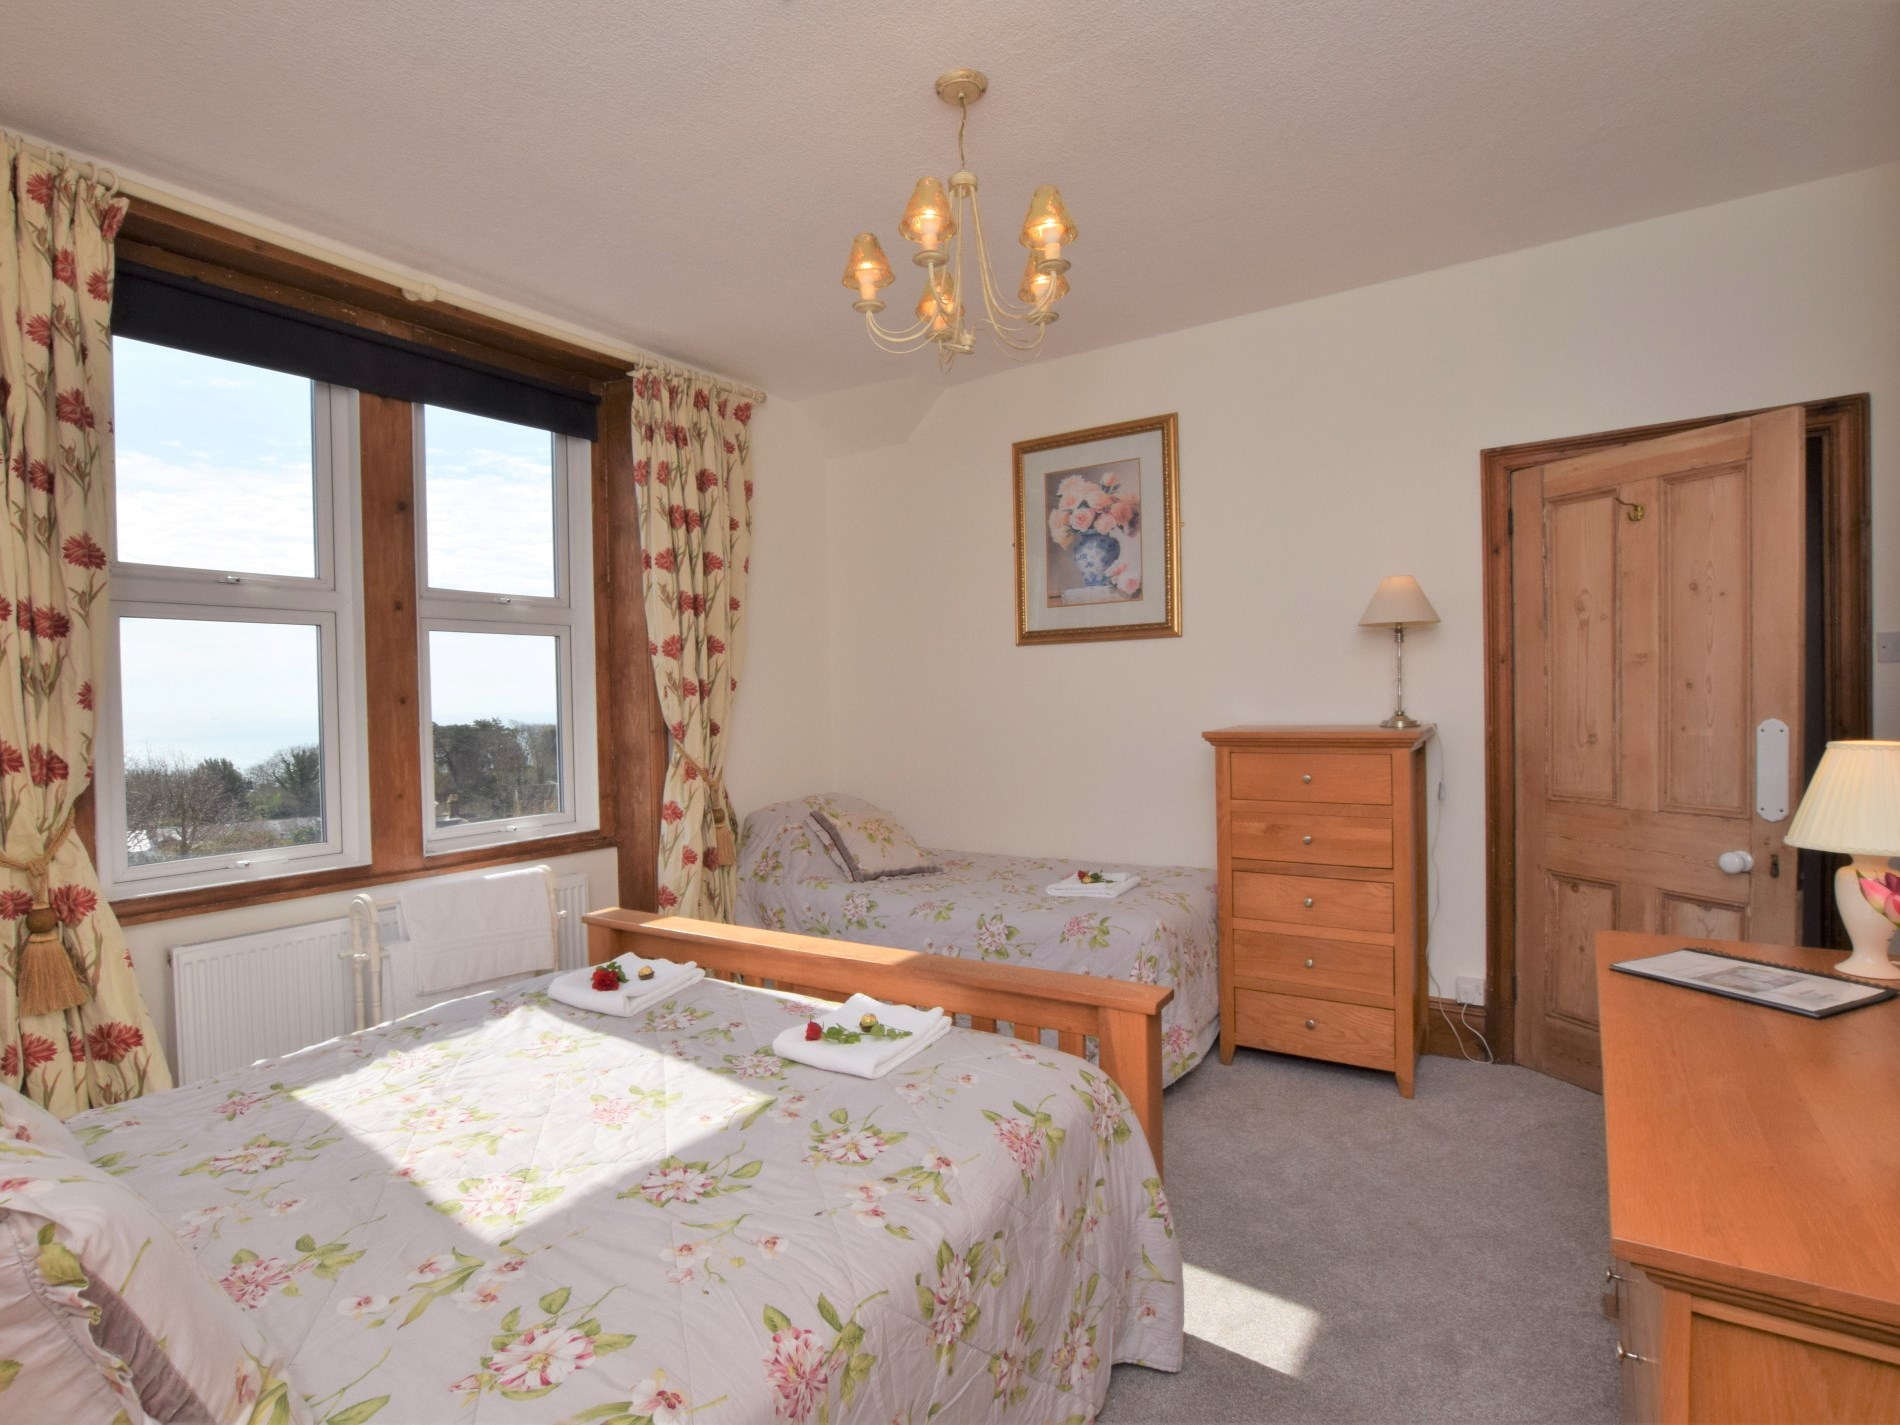 4 Bedroom House in Isle of Wight, Isle Of Wight